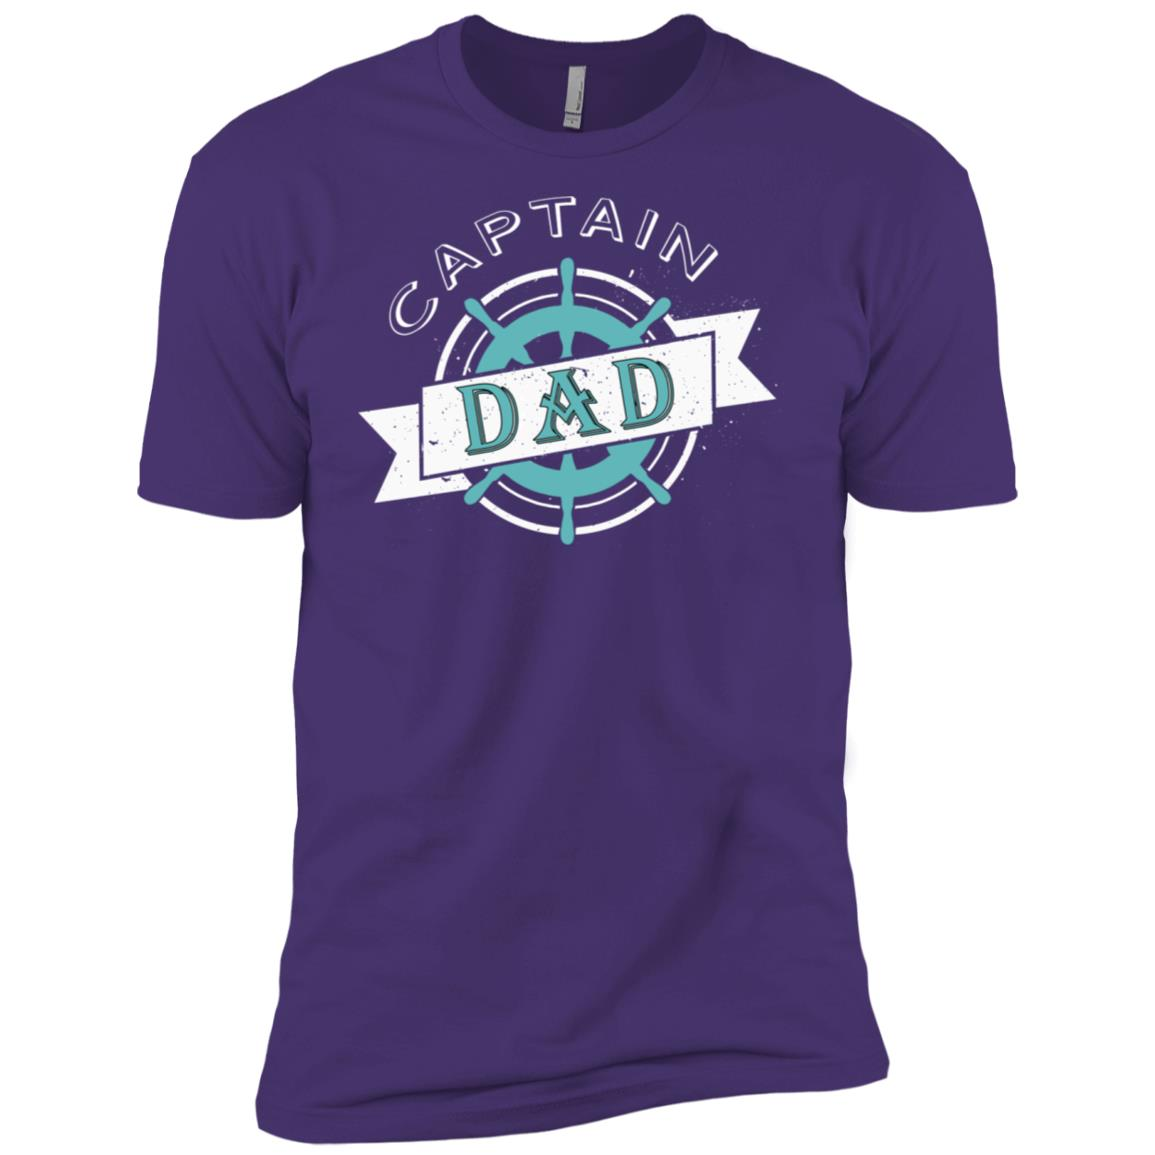 Captain Dad Funny Fathers Day Boat Ship Sailor Men Short Sleeve T-Shirt